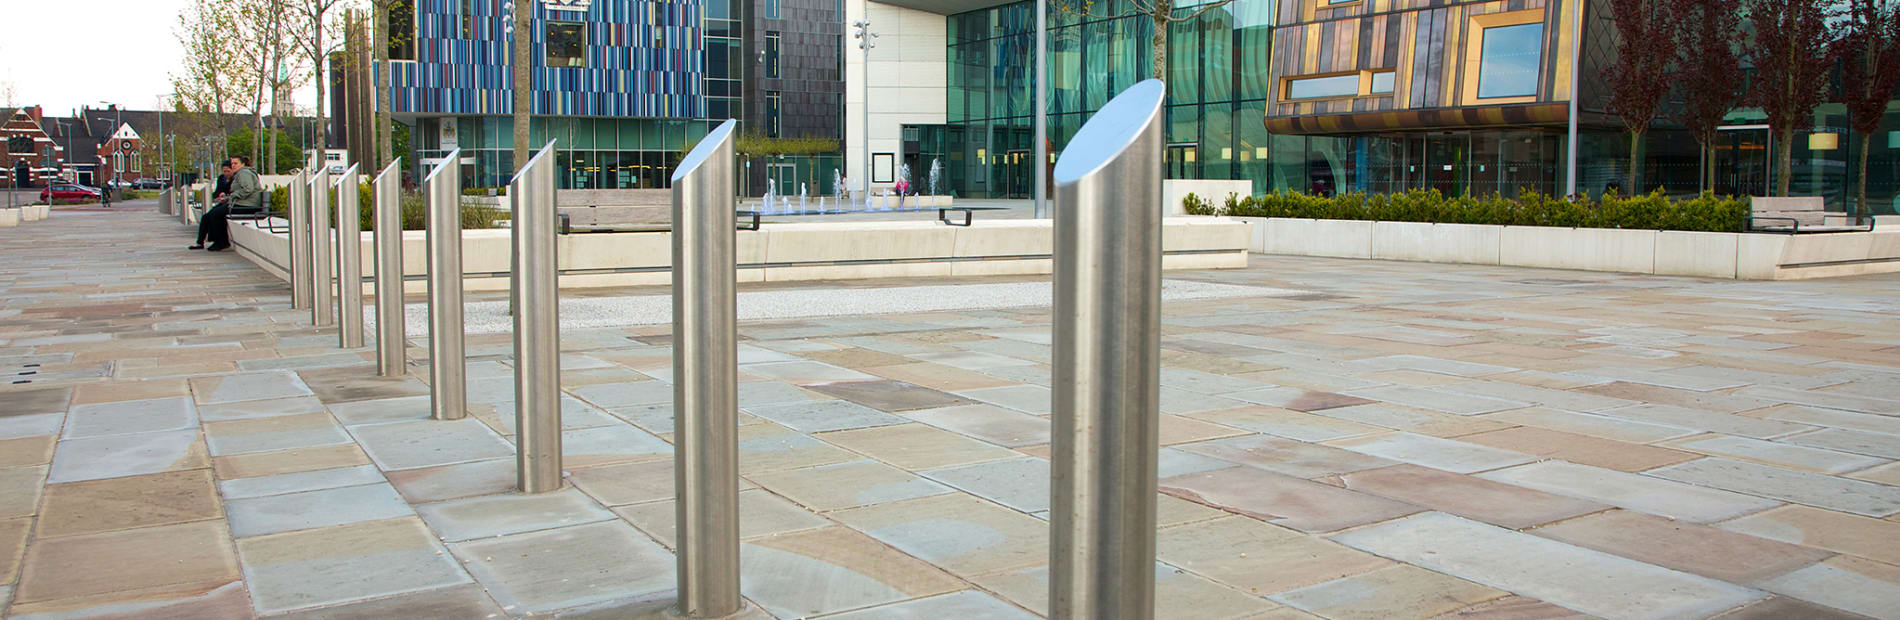 stainless steel bollards outside a university